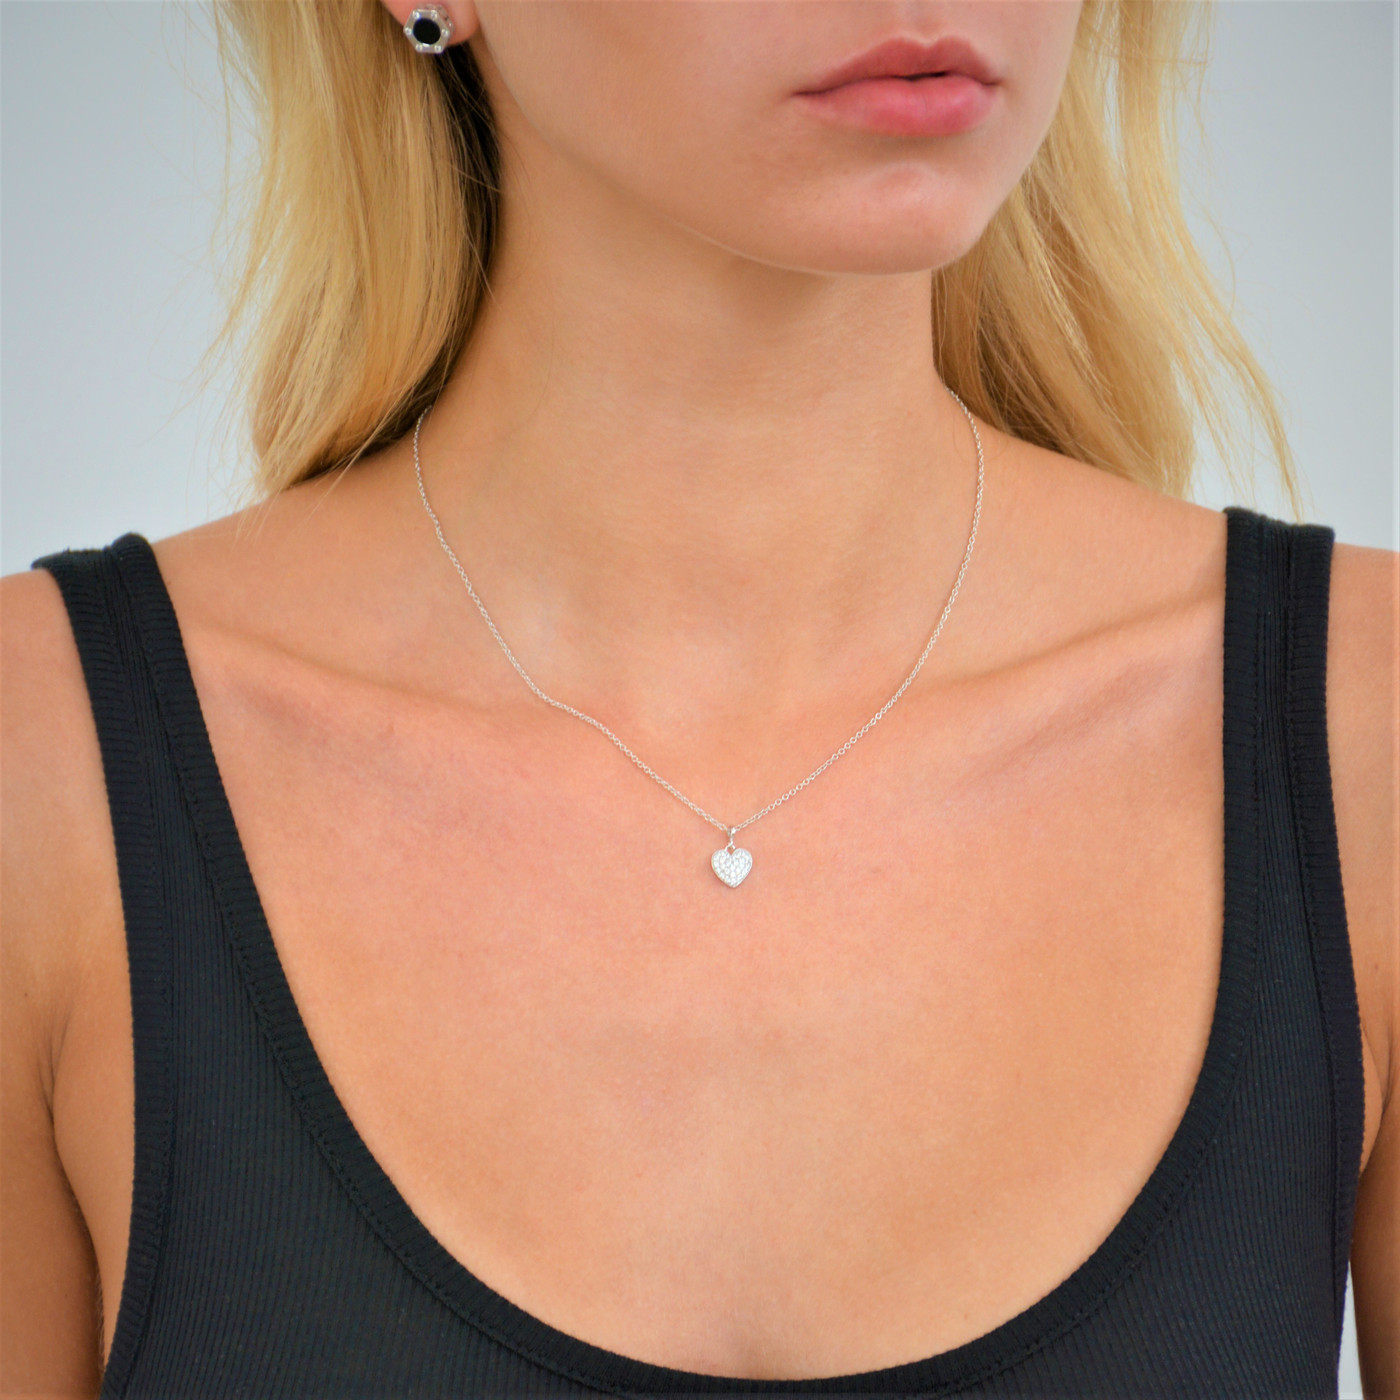 18K Gold over Sterling Silver Delicate Heart Necklace